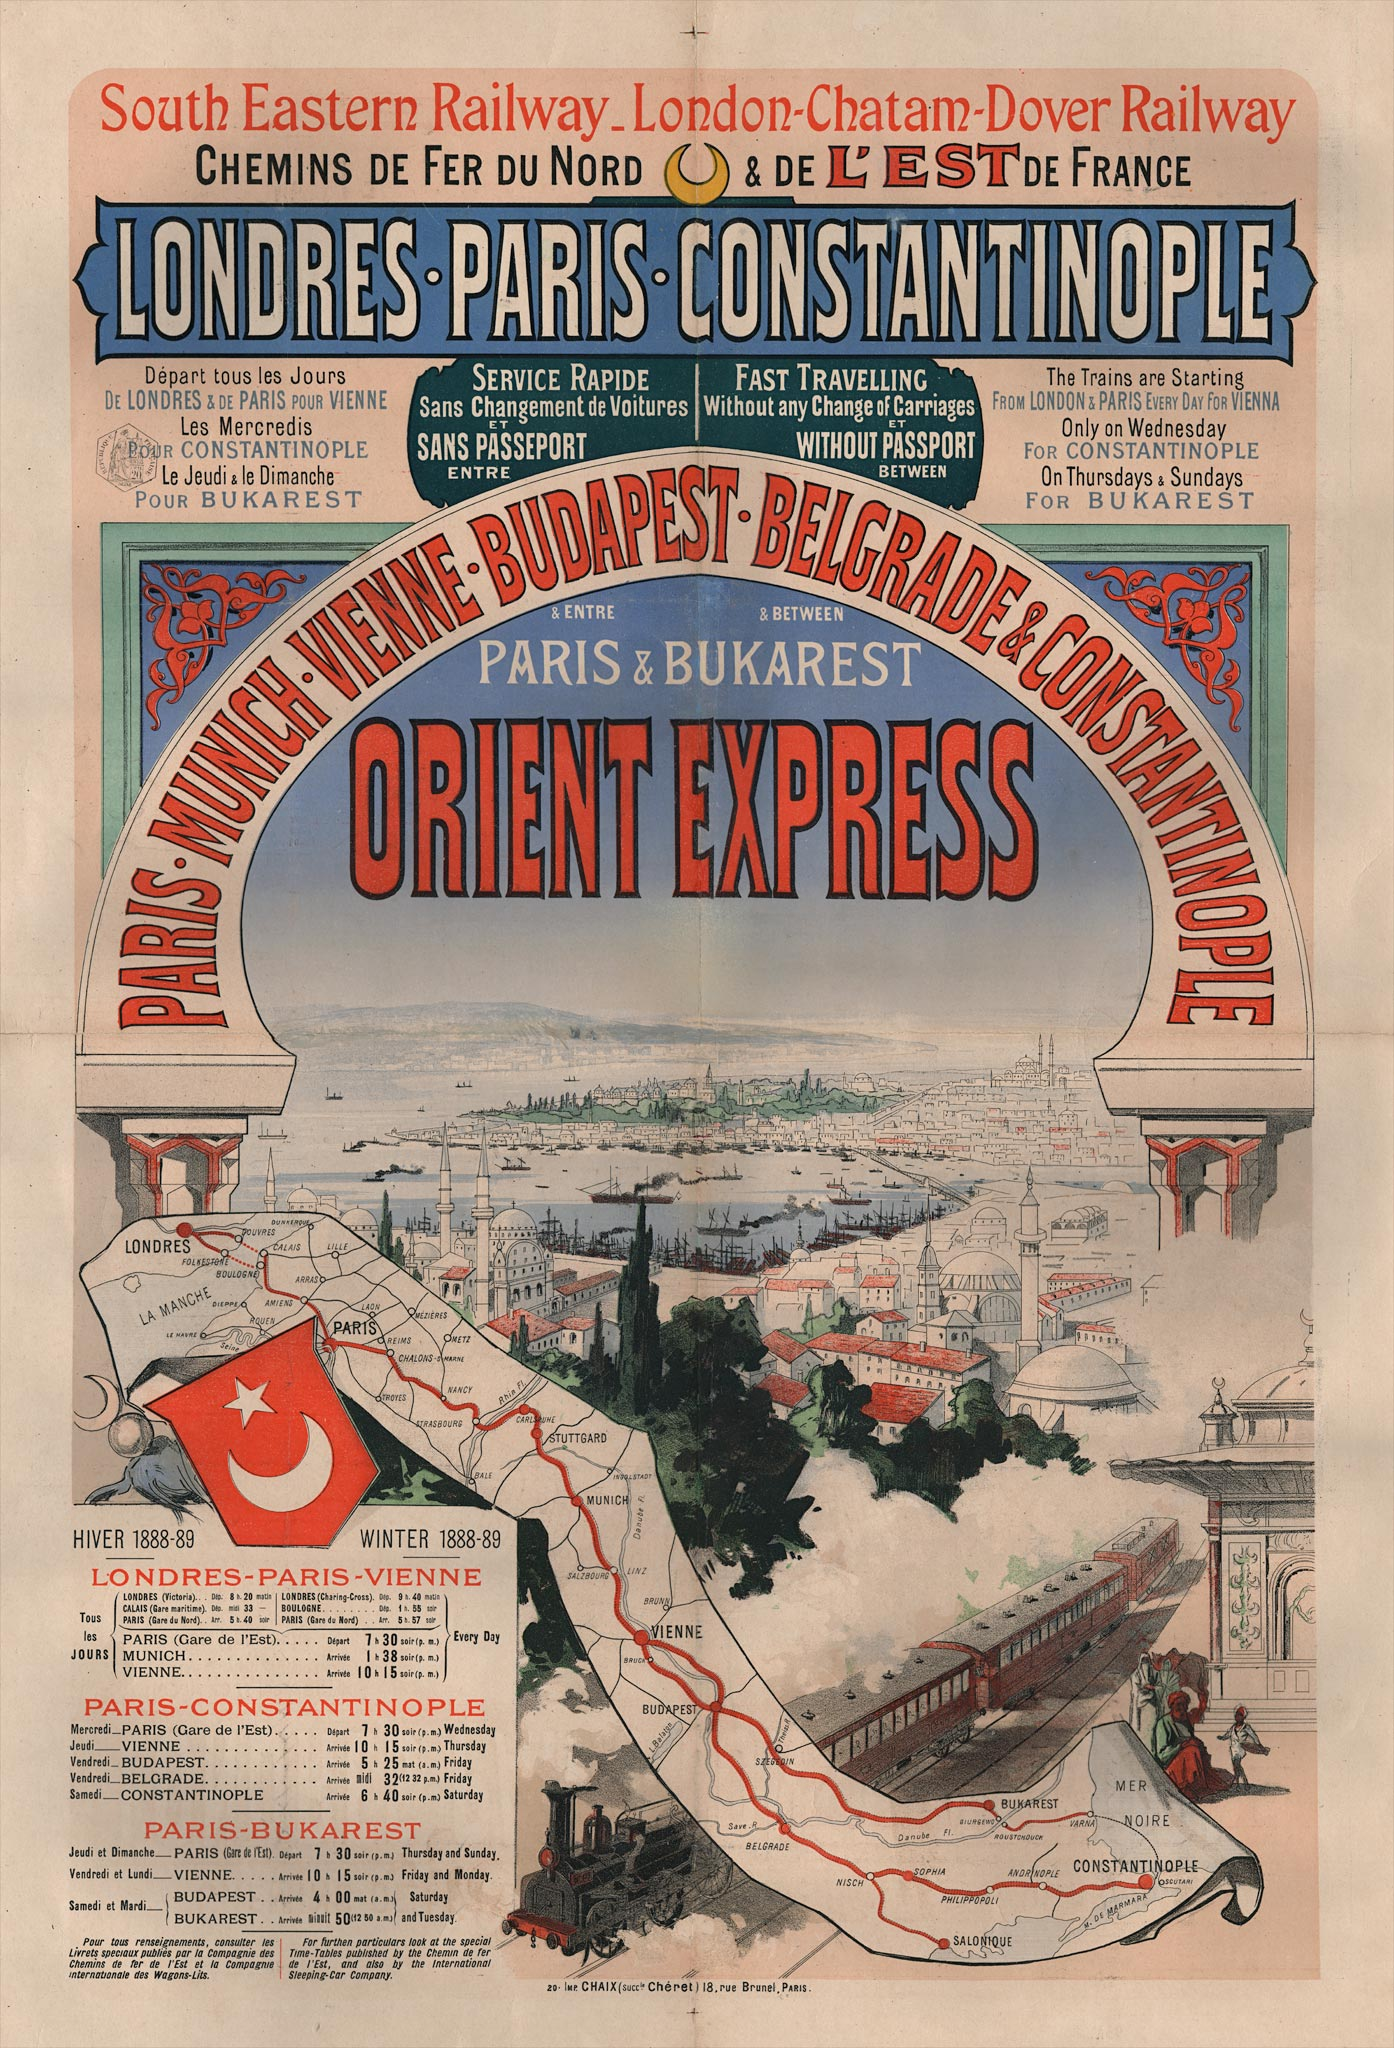 orient express - wikipedia